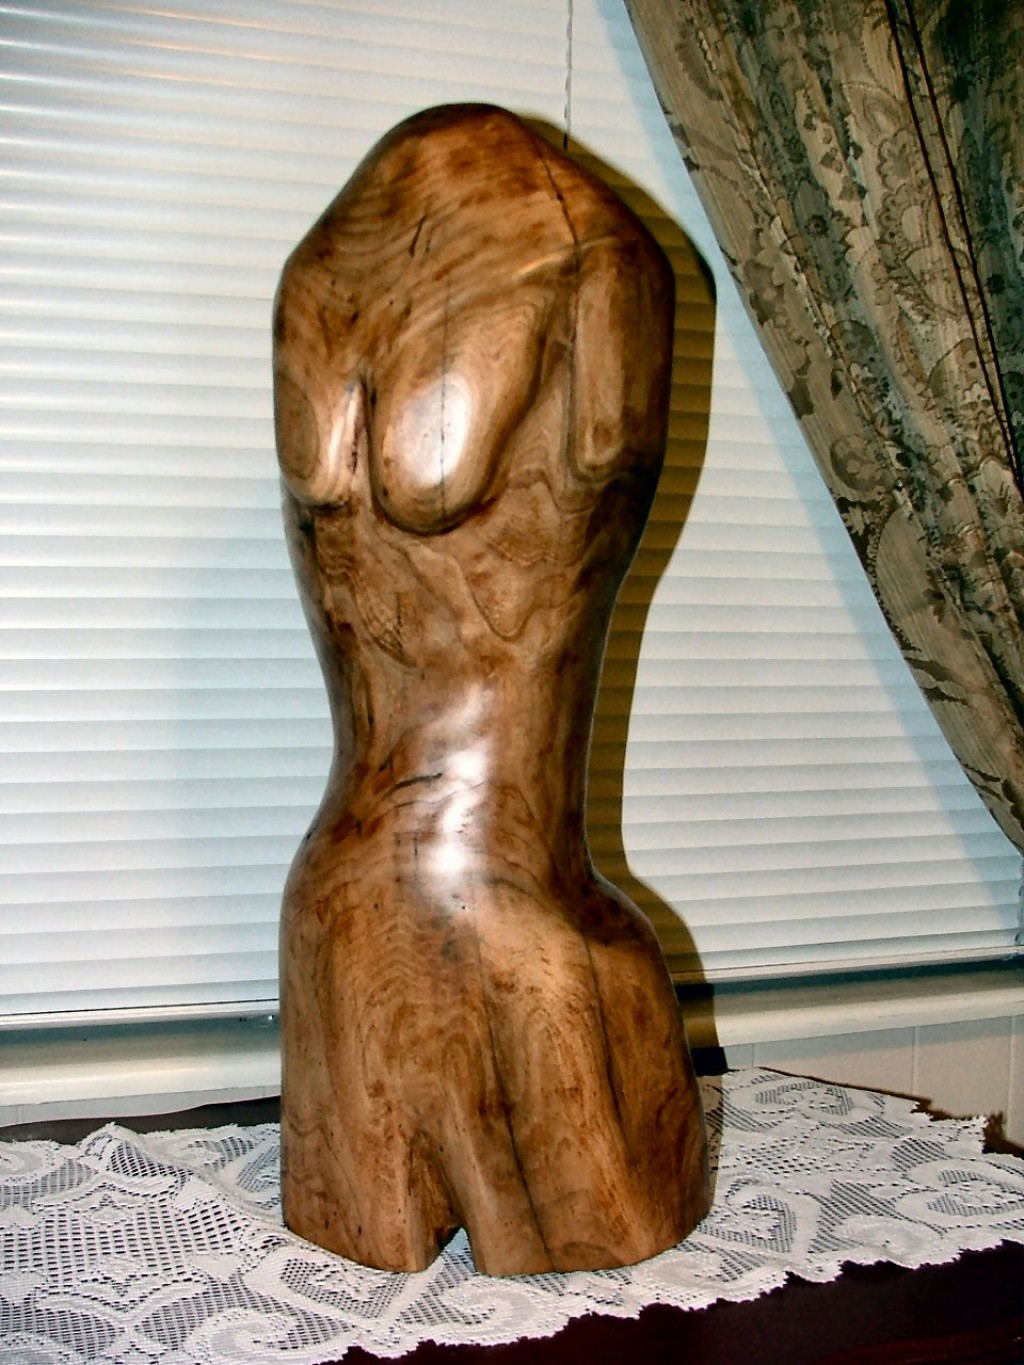 How to carve oak and other hardwood tree trunks into